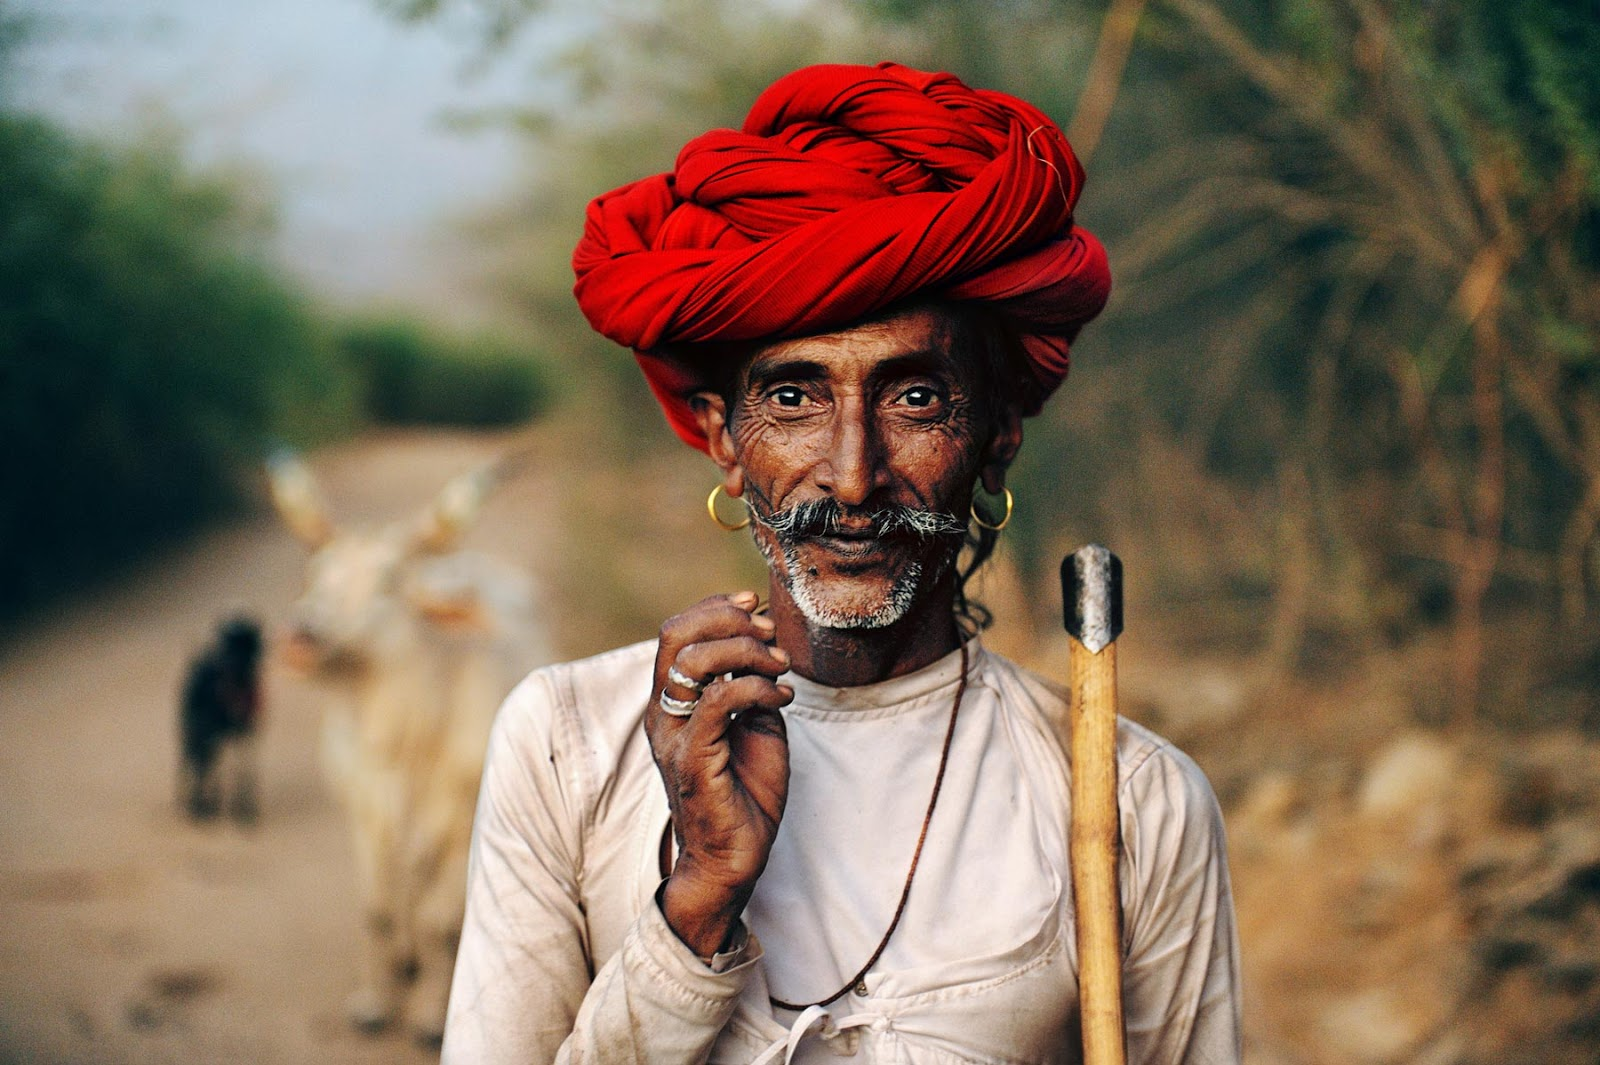 East indian people photos